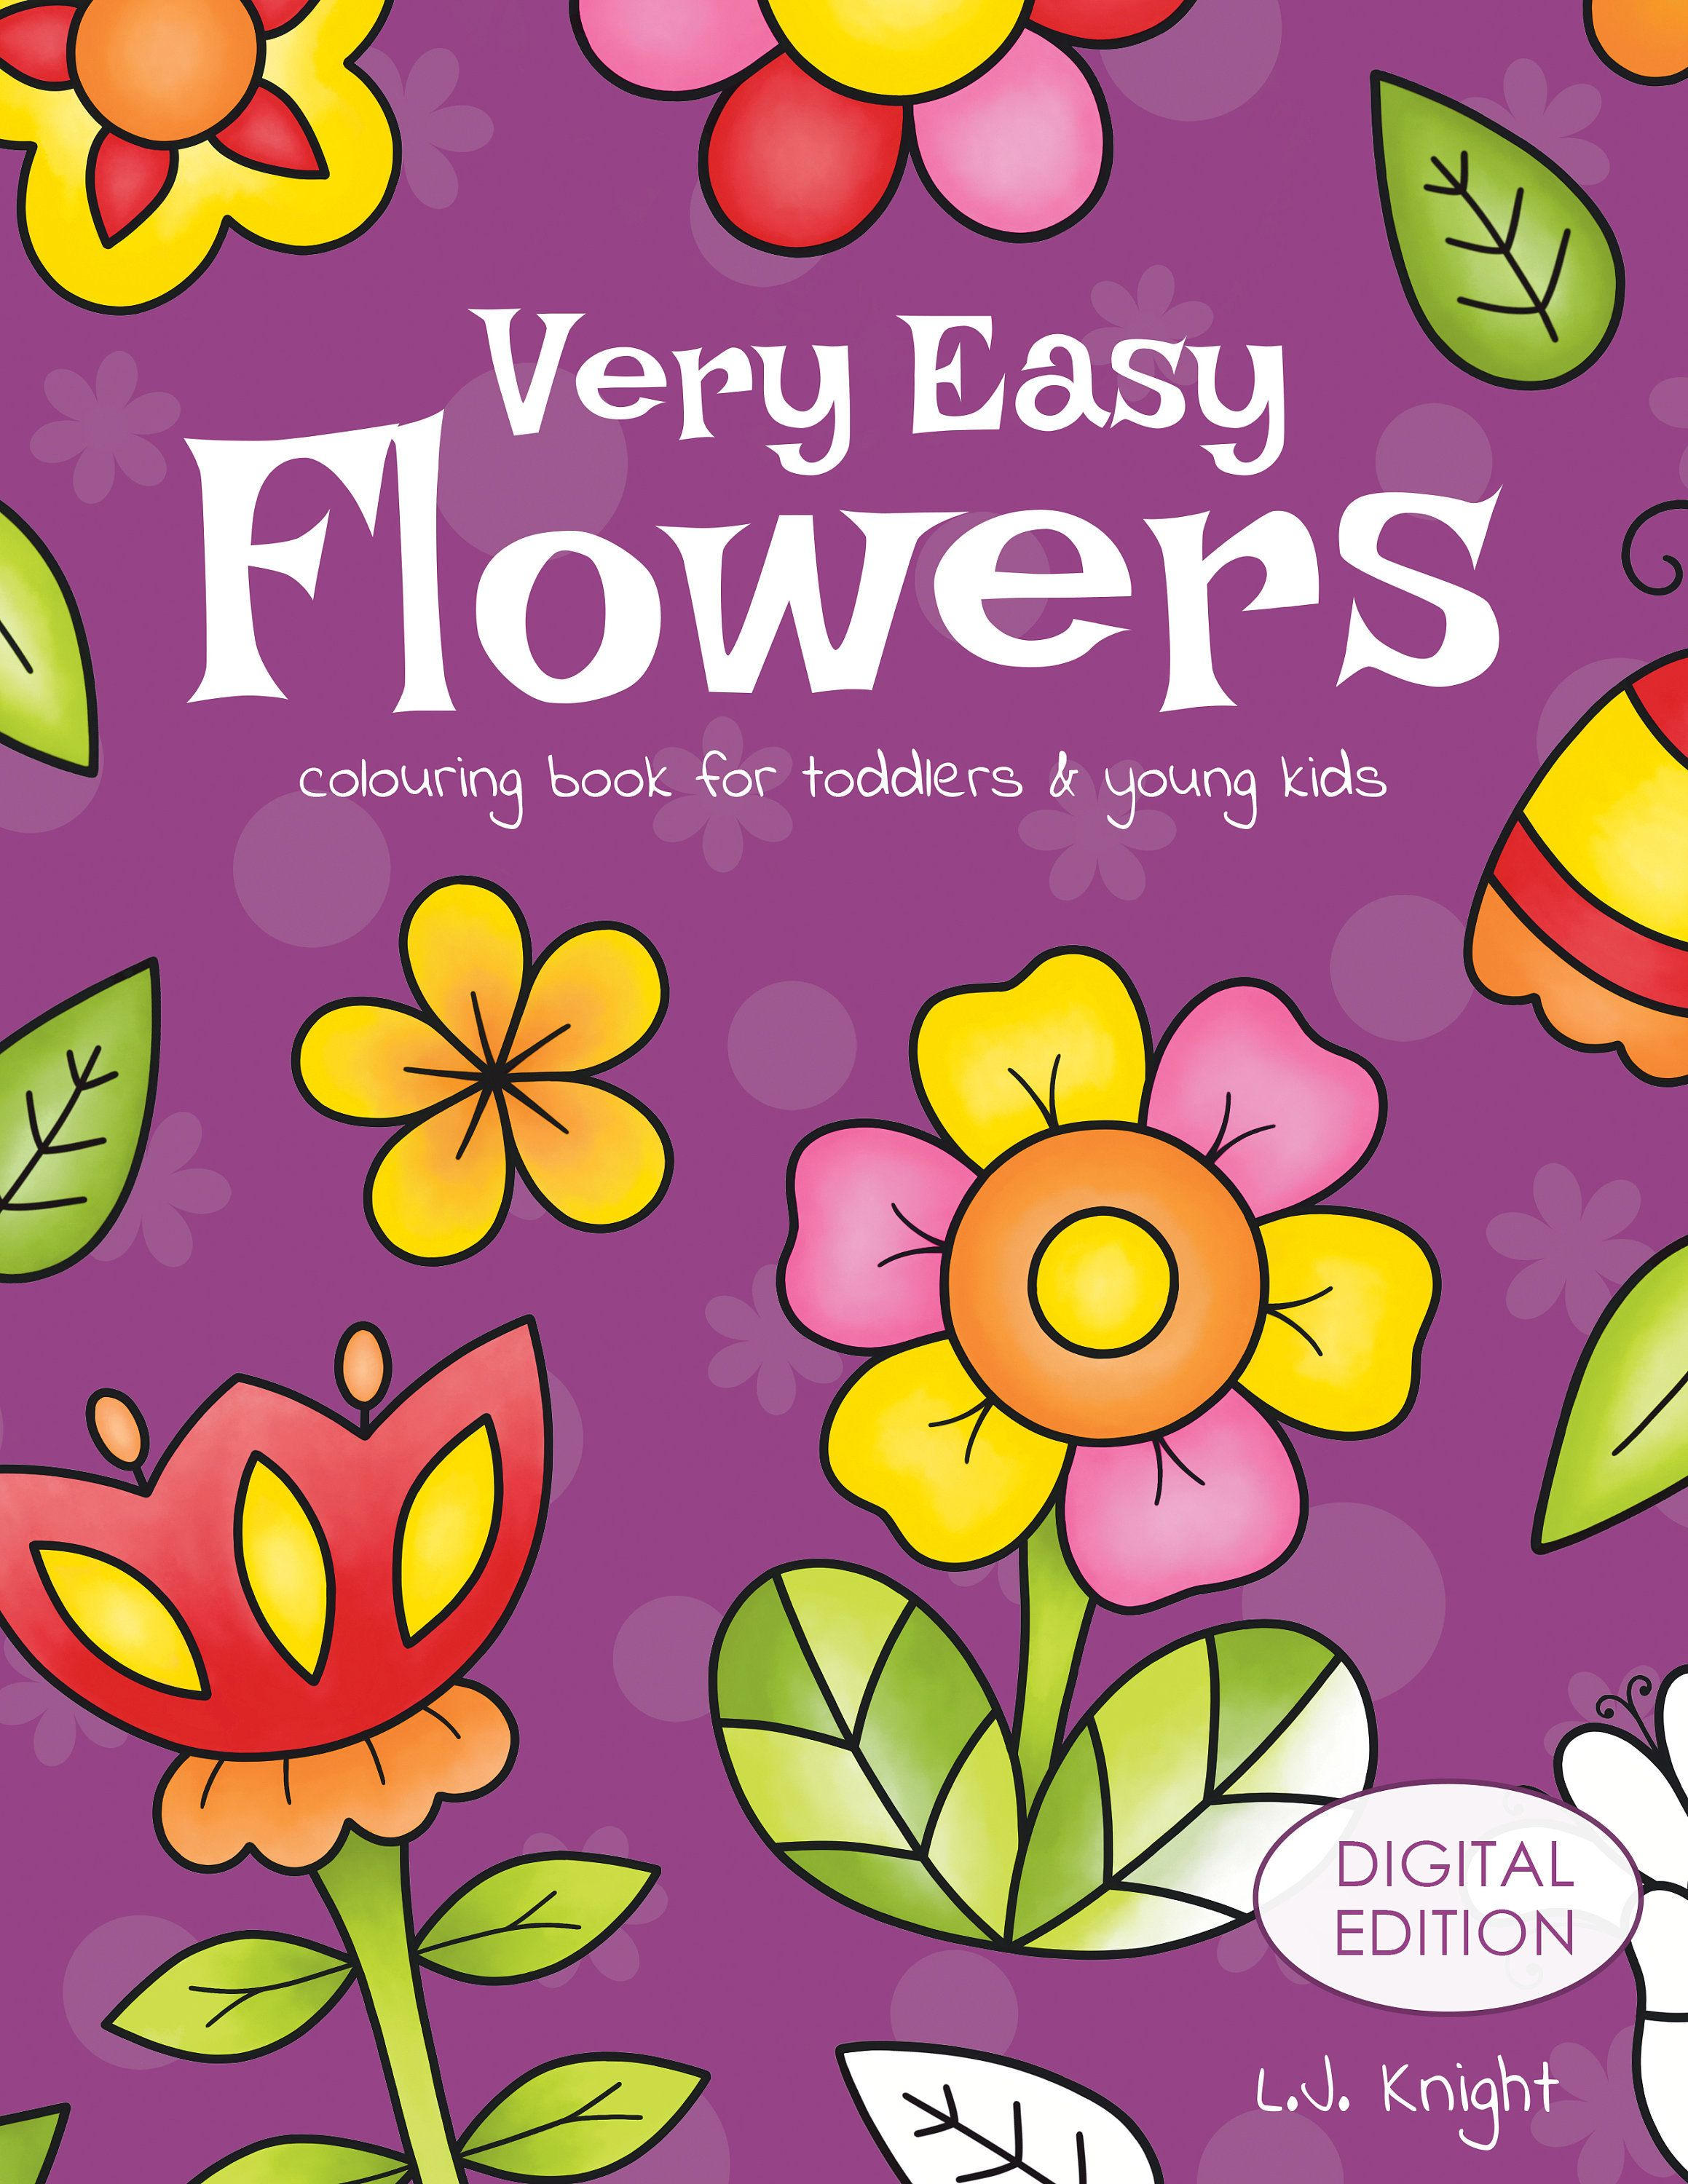 Very Easy Flowers Printable Colouring Book For Toddlers Etsy In 2020 Toddler Coloring Book Toddler Books Coloring Books